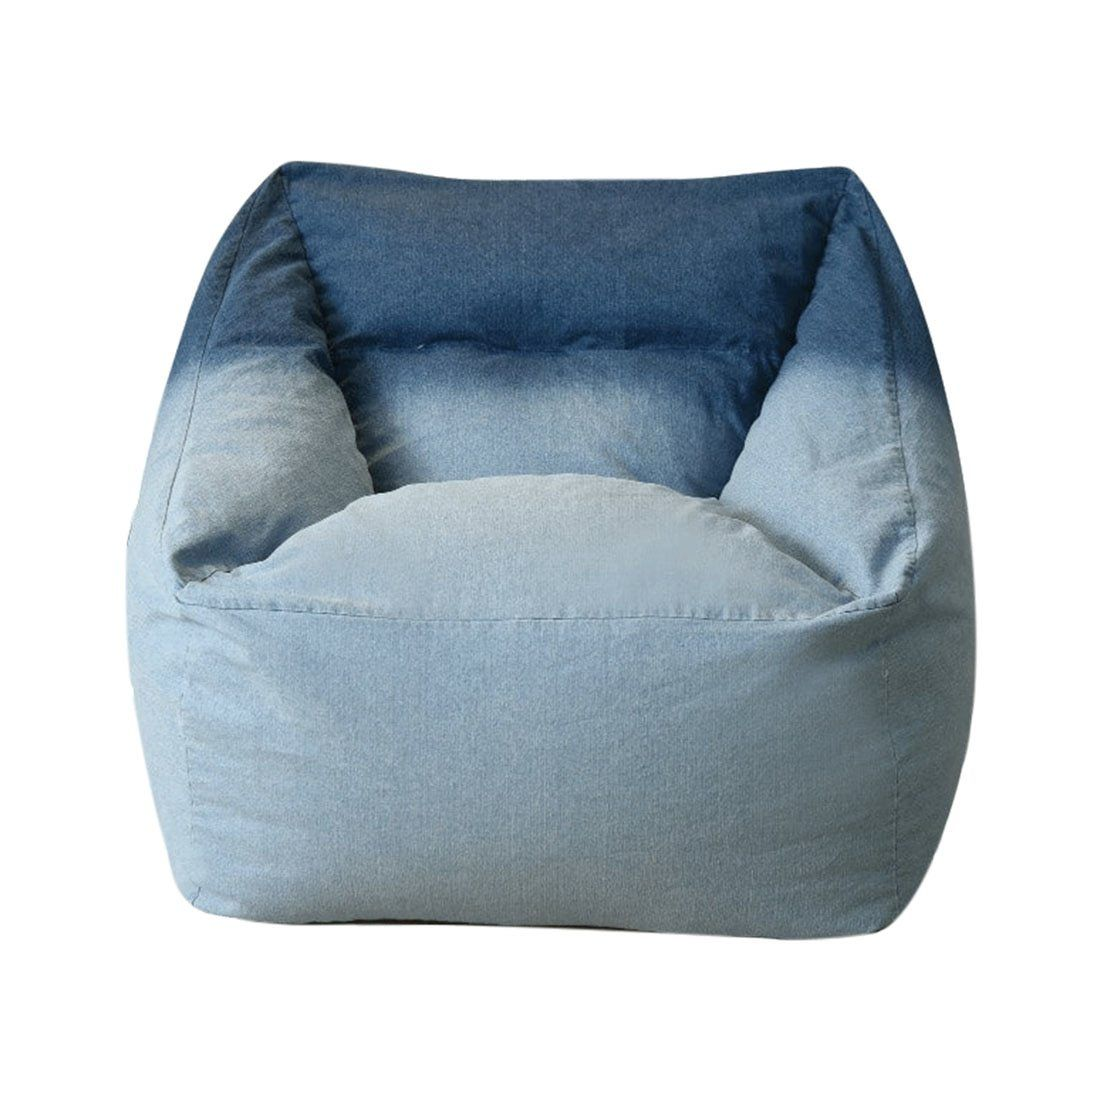 Sofa Lazy Seat Bean Bag Chair Sillones